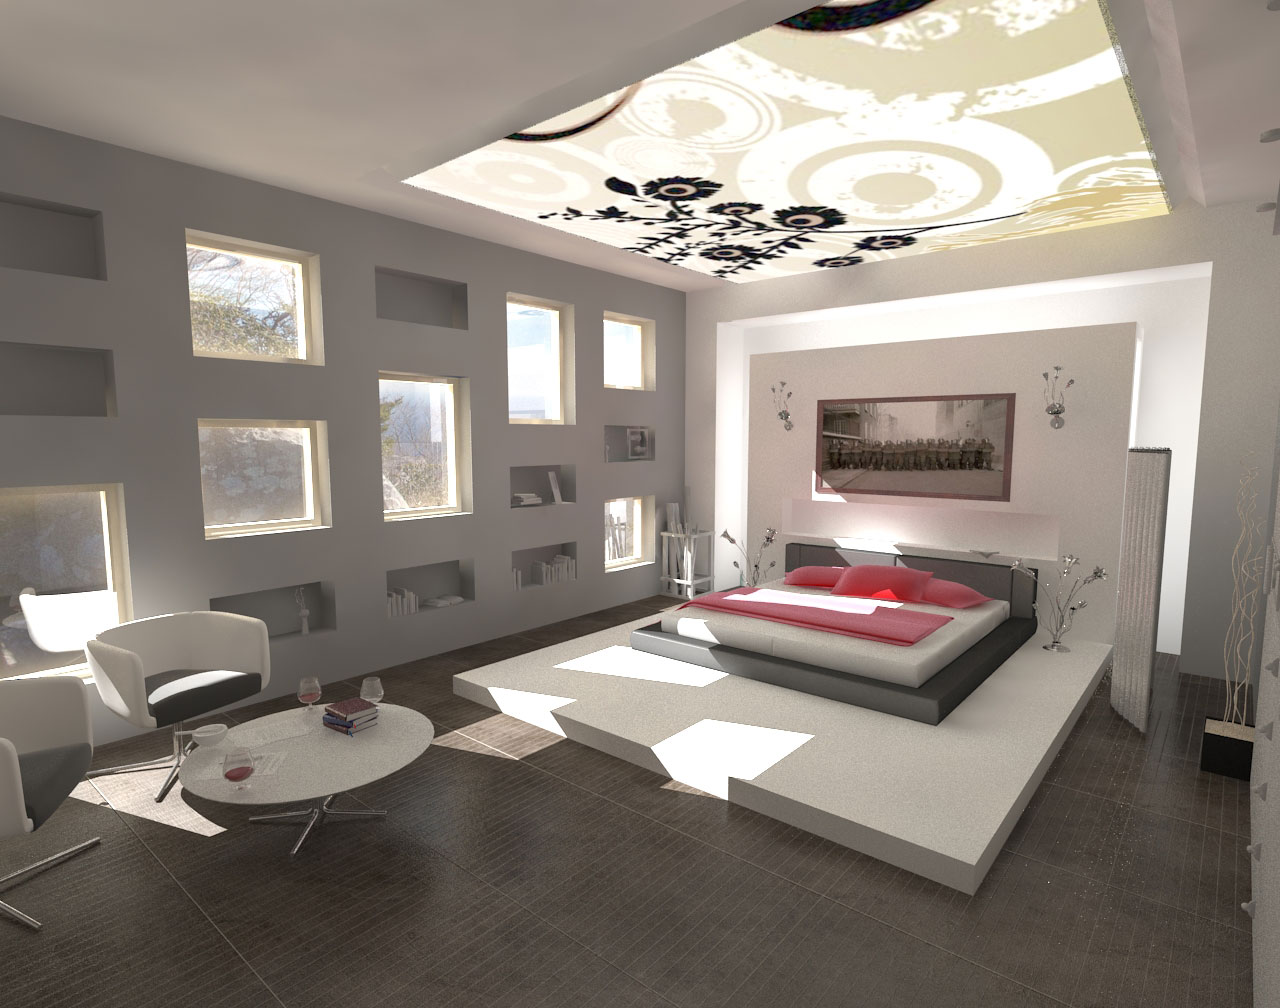 Decorations minimalist design modern bedroom interior for Contemporary interior design ideas